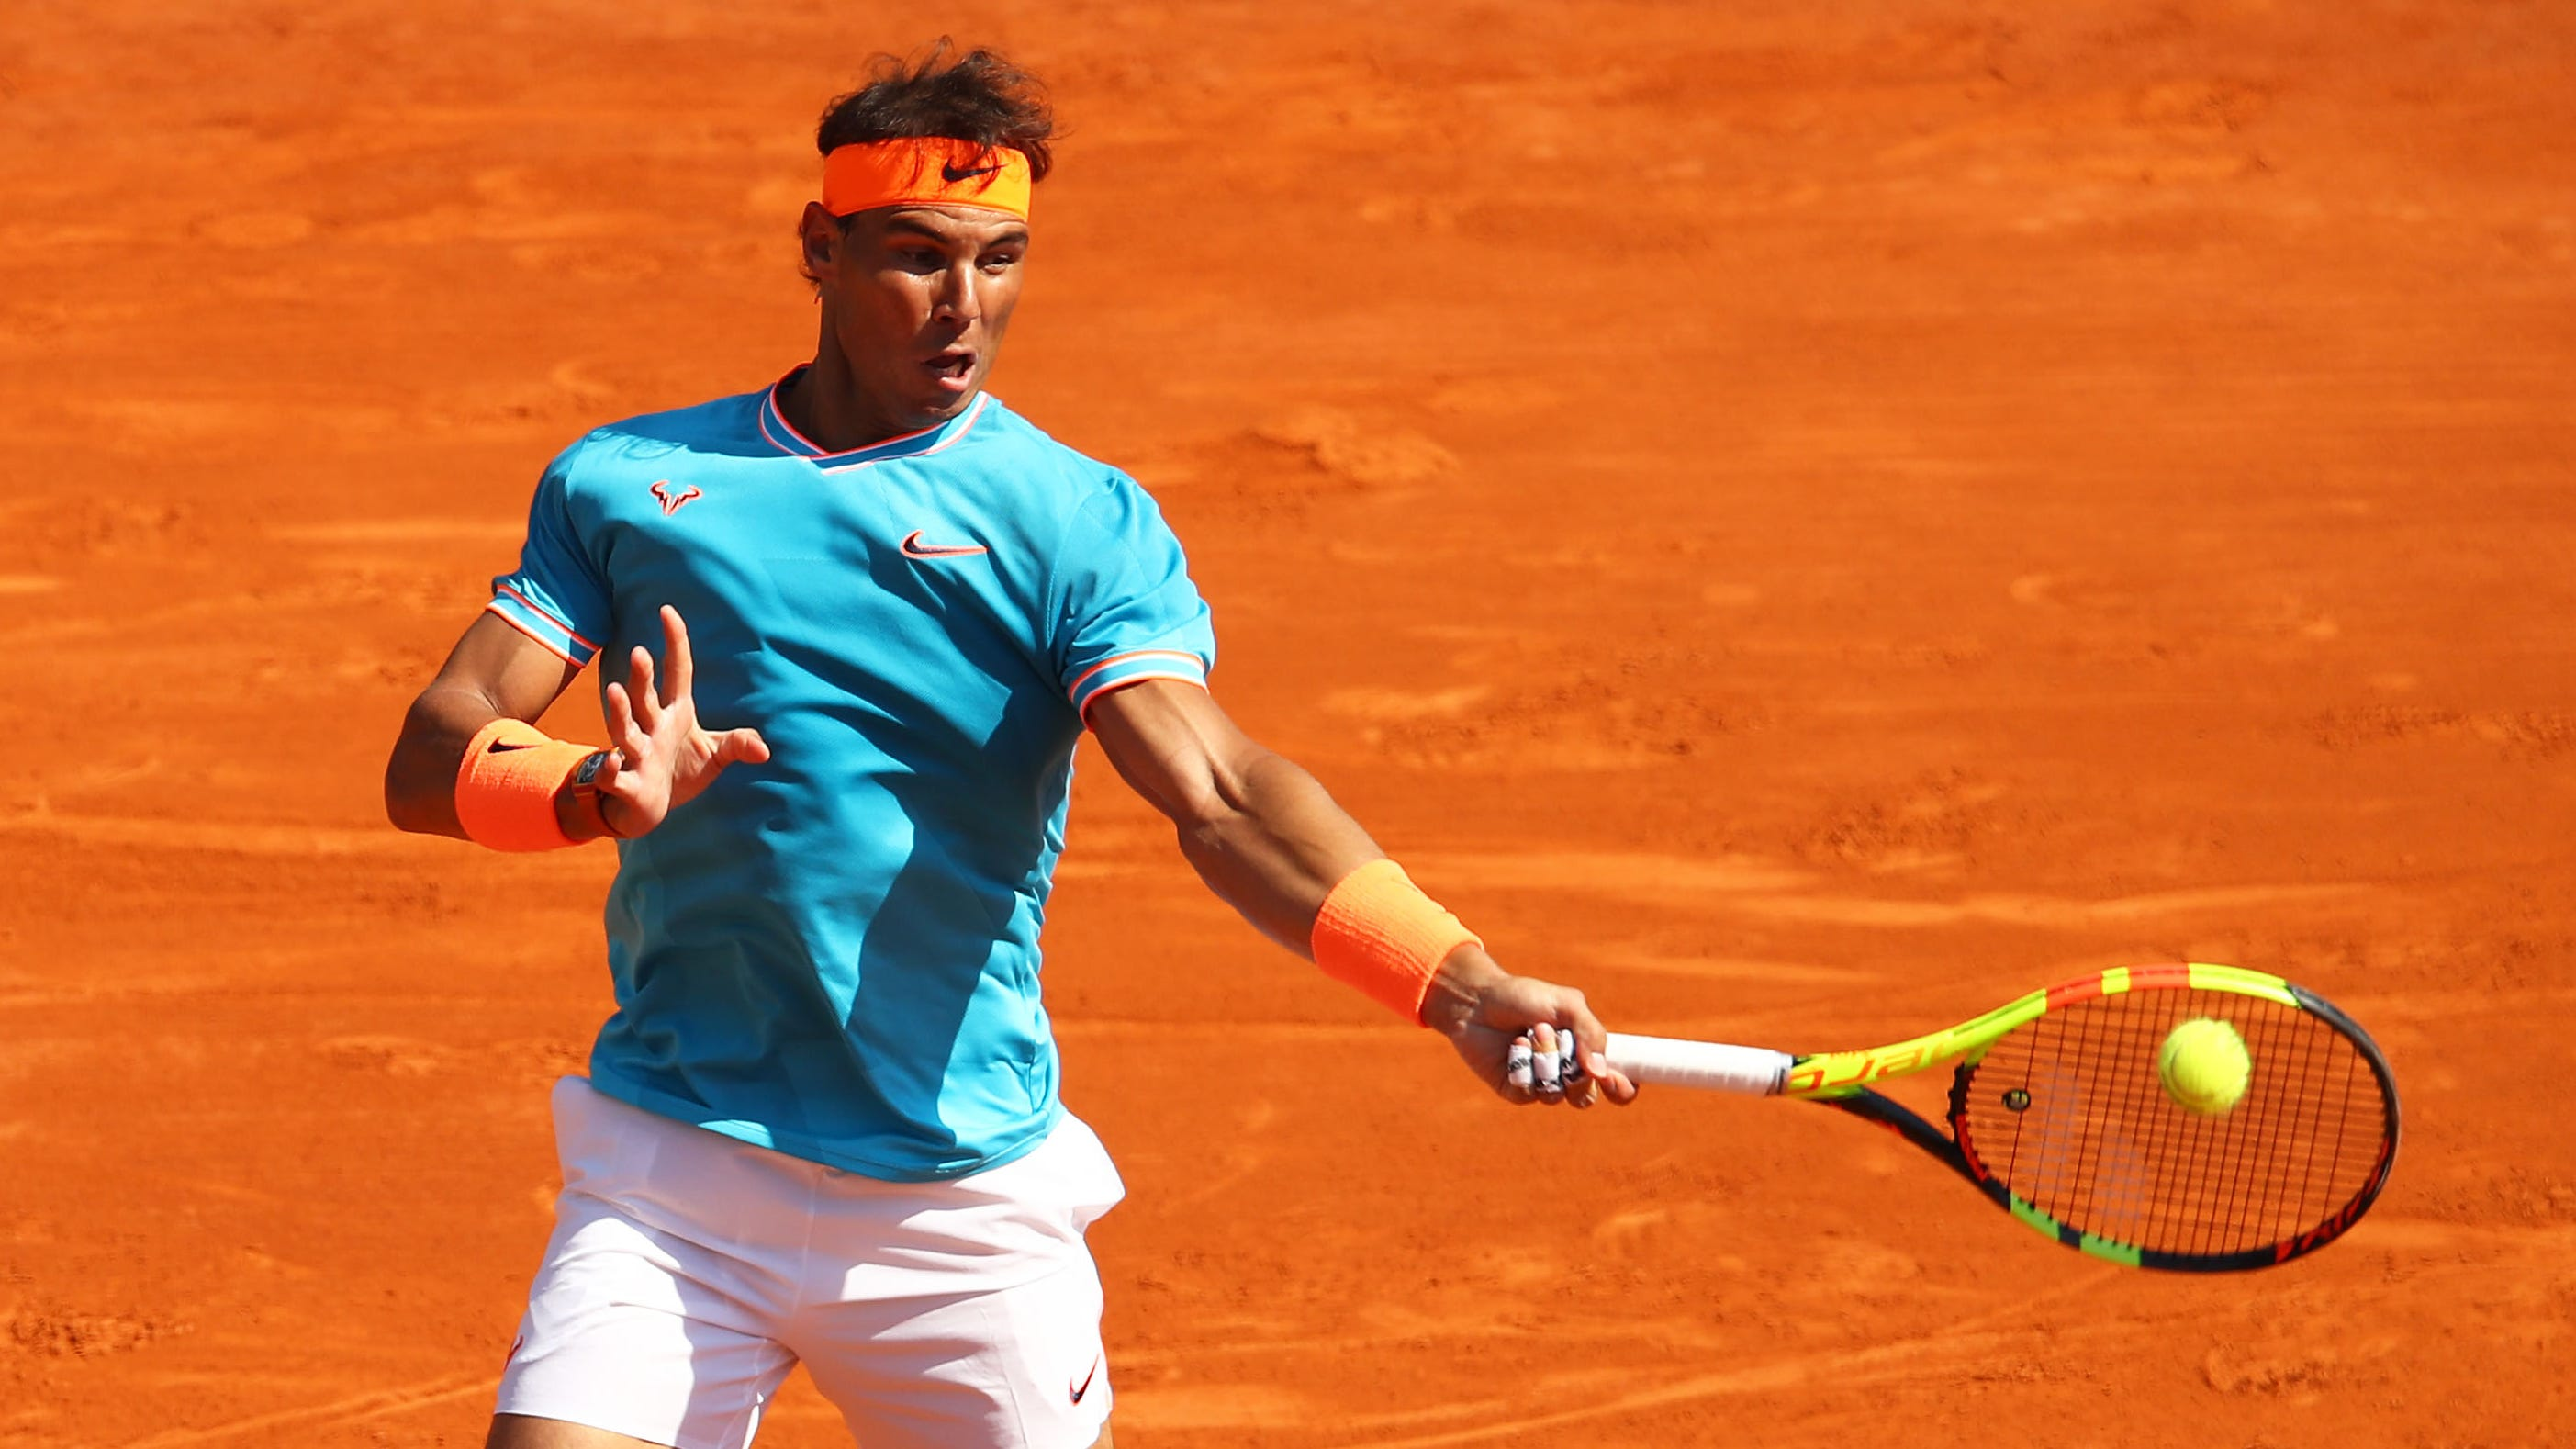 Rafael Nadal of Spain plays a forehand against Roberto Bautista Agut of Spain in their second-round match at the Monte Carlo Masters.